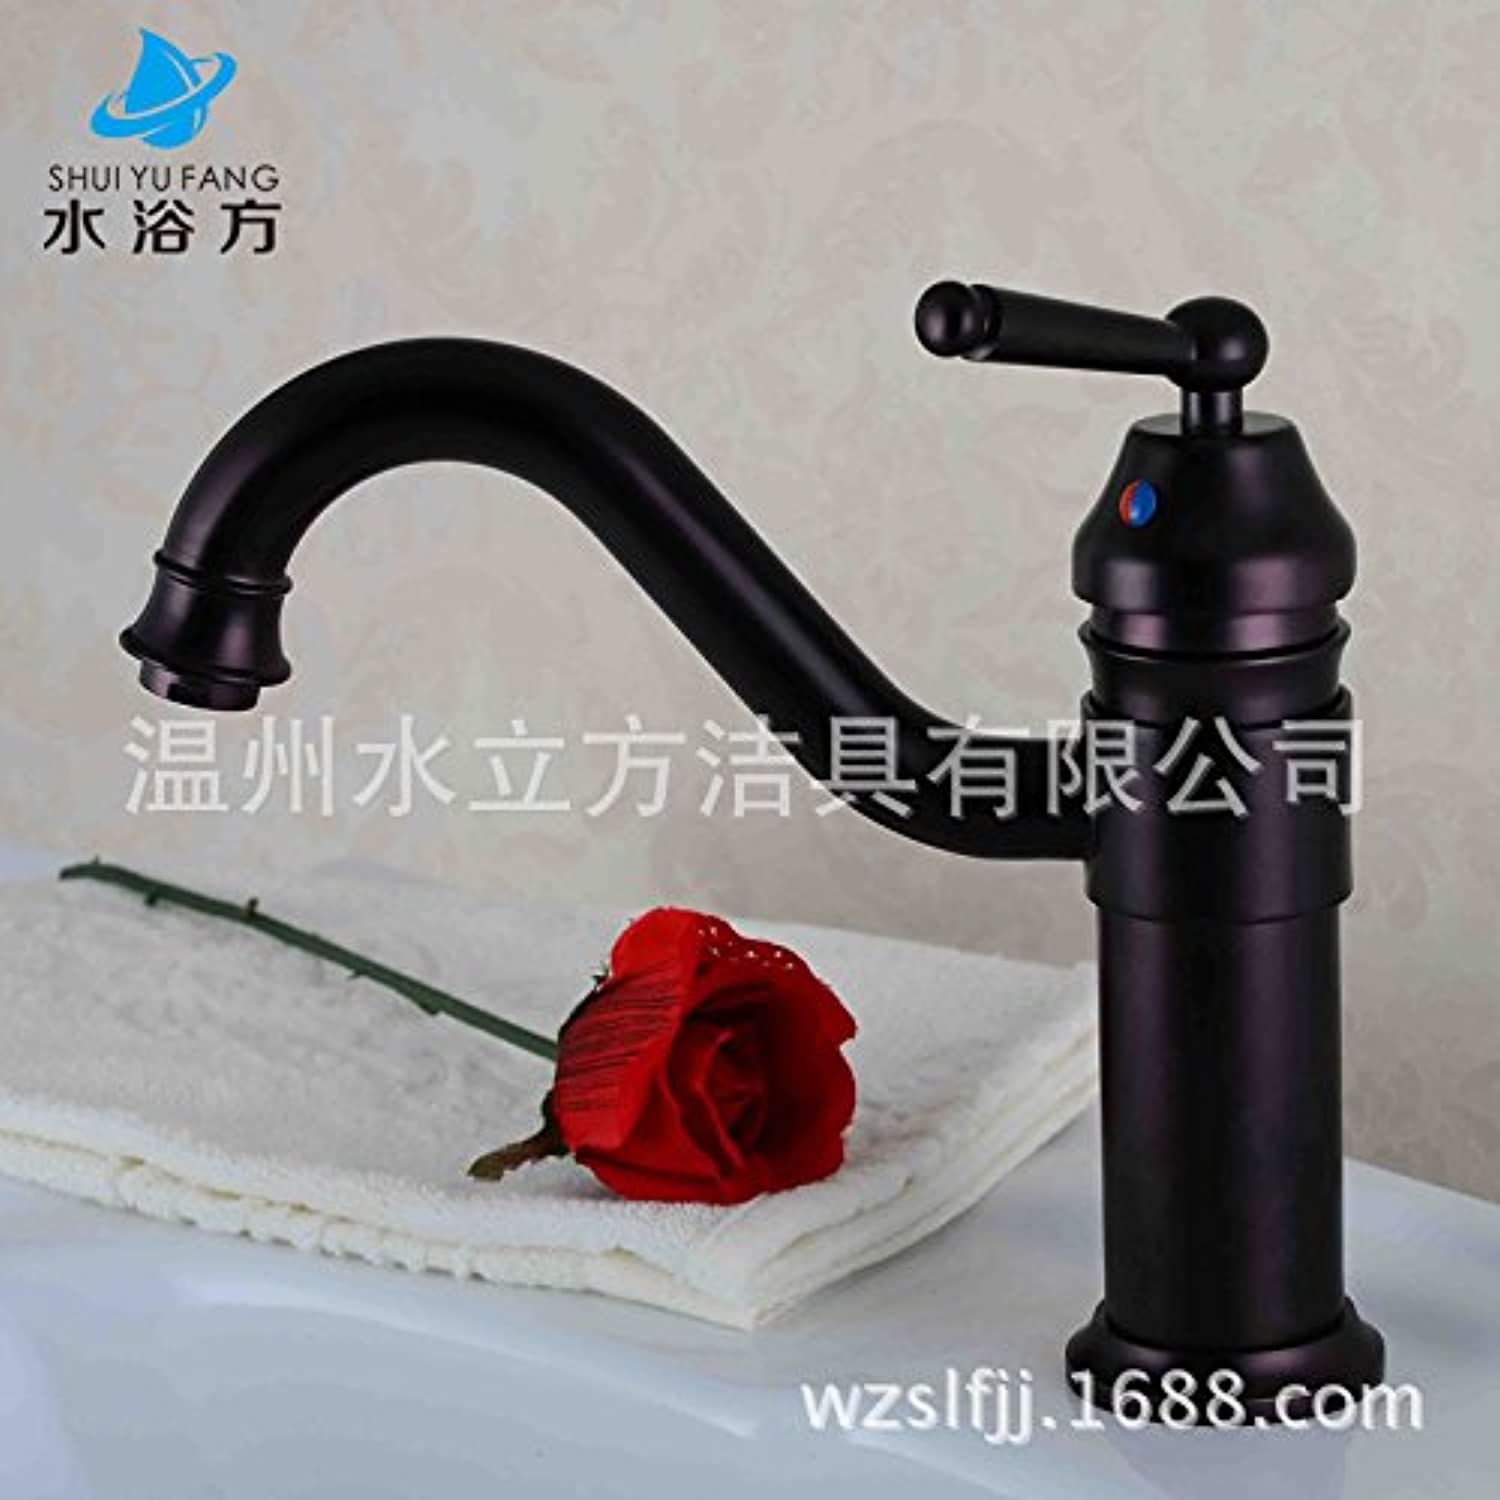 Fbict Basin hot and Cold Faucet Basin hot and Cold Water Faucet gold Copper Bathroom wash Basin Faucet for Kitchen Bathroom Faucet Bid Tap